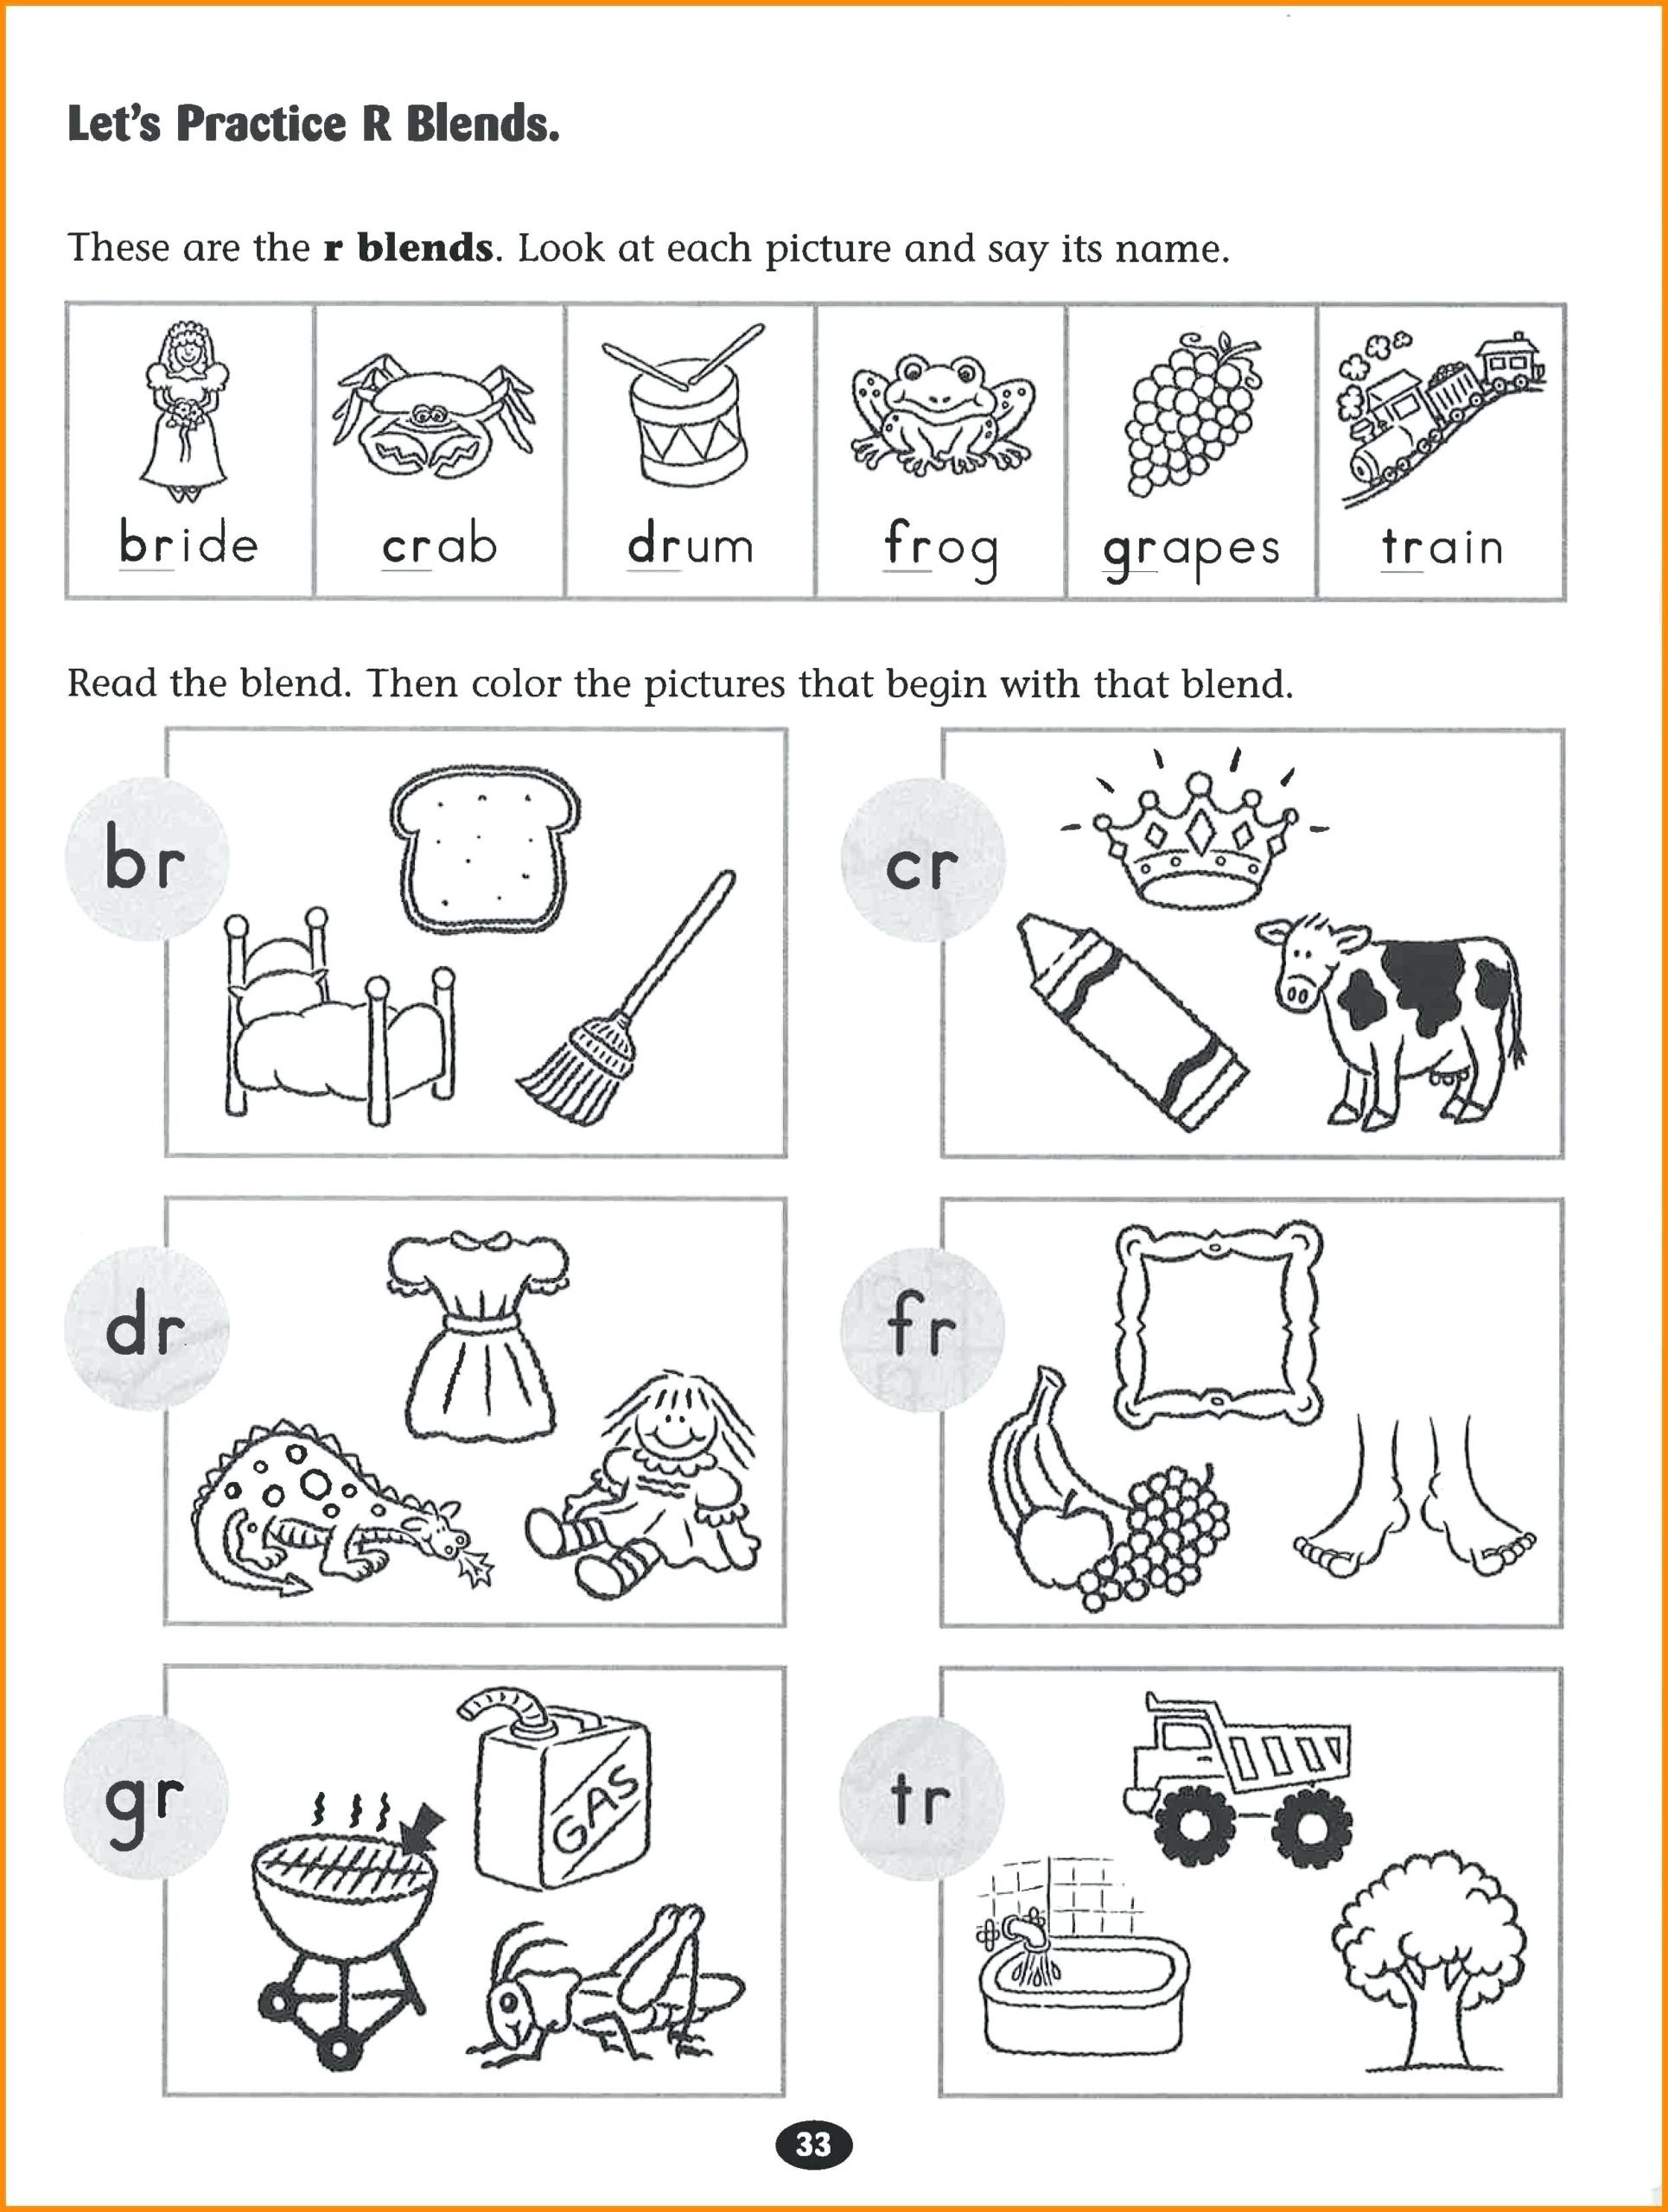 Zaner Bloser Handwriting Worksheets Worksheet English for Kid Beginners Zaner Bloser Cursive